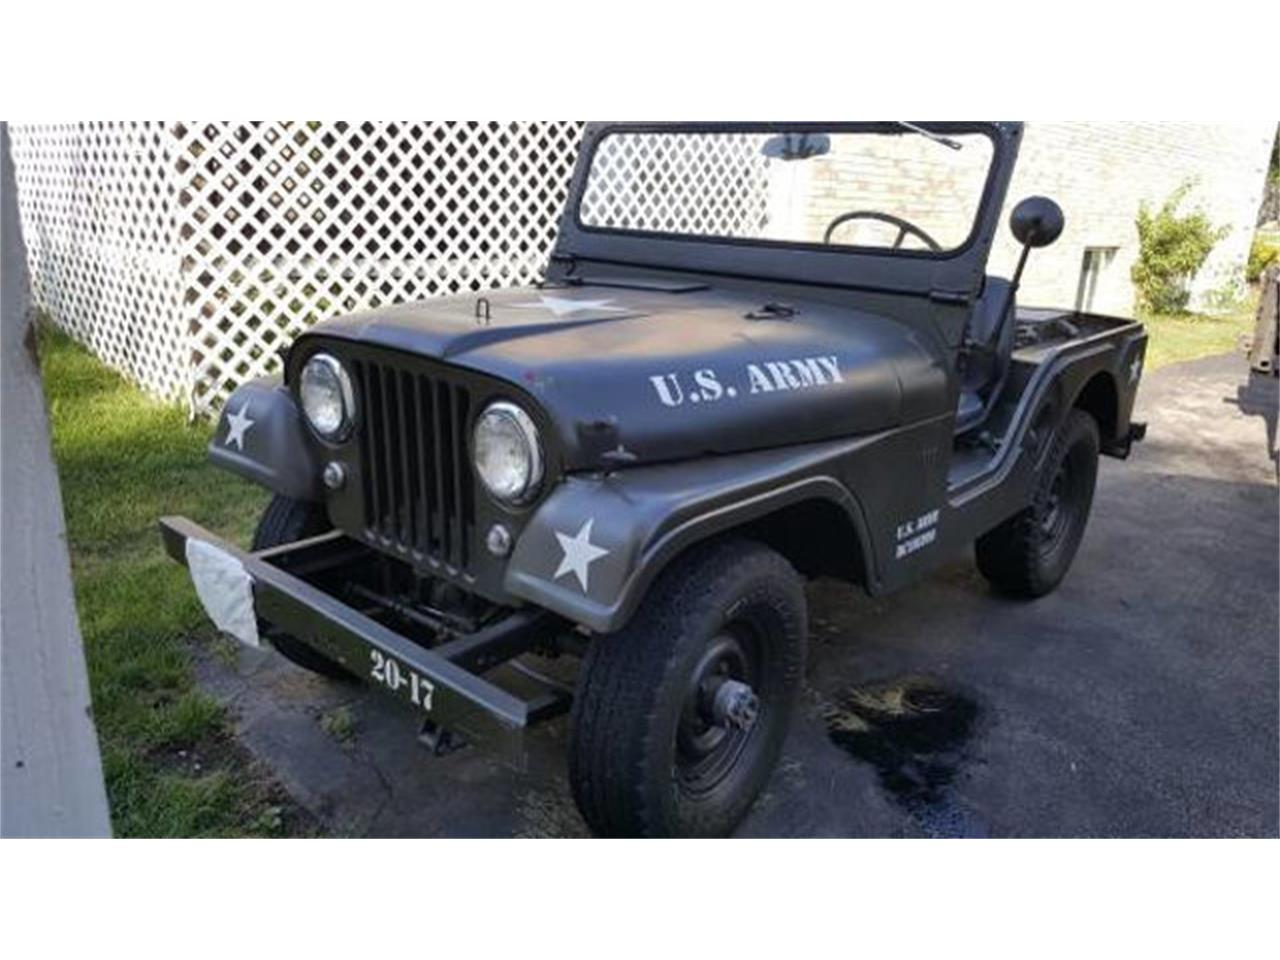 Large Picture of '58 Jeep - QXC2